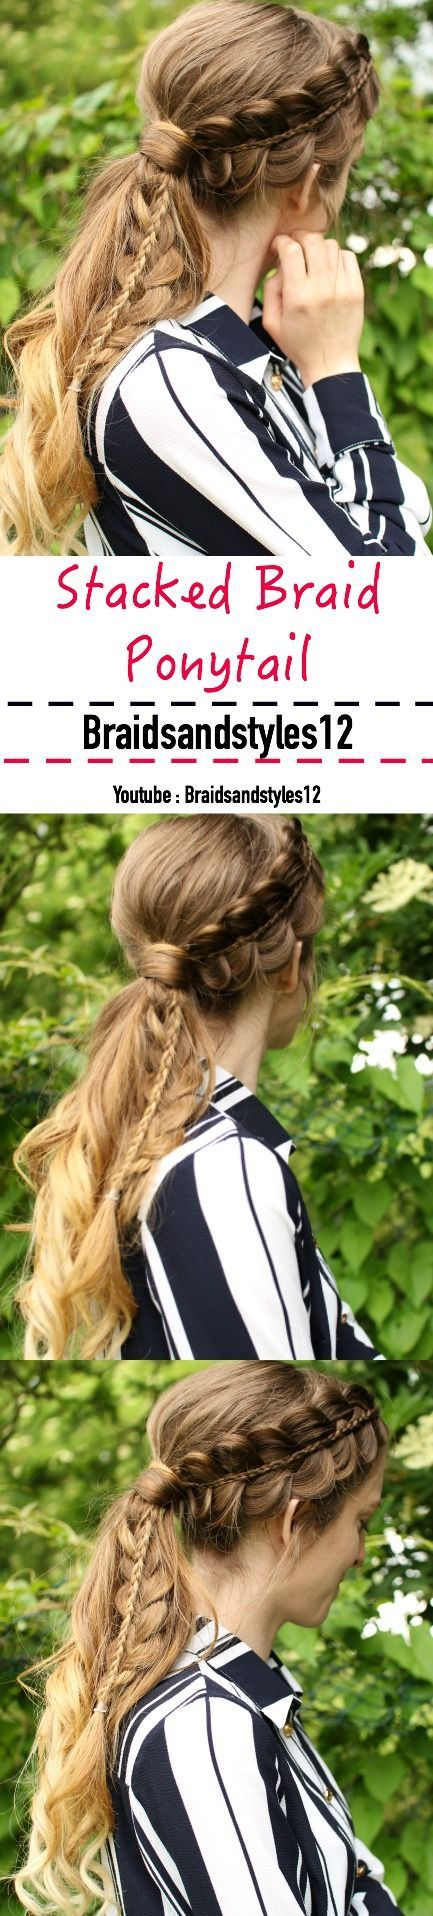 Braided ponytail hairstyles ponytail hairstyles by